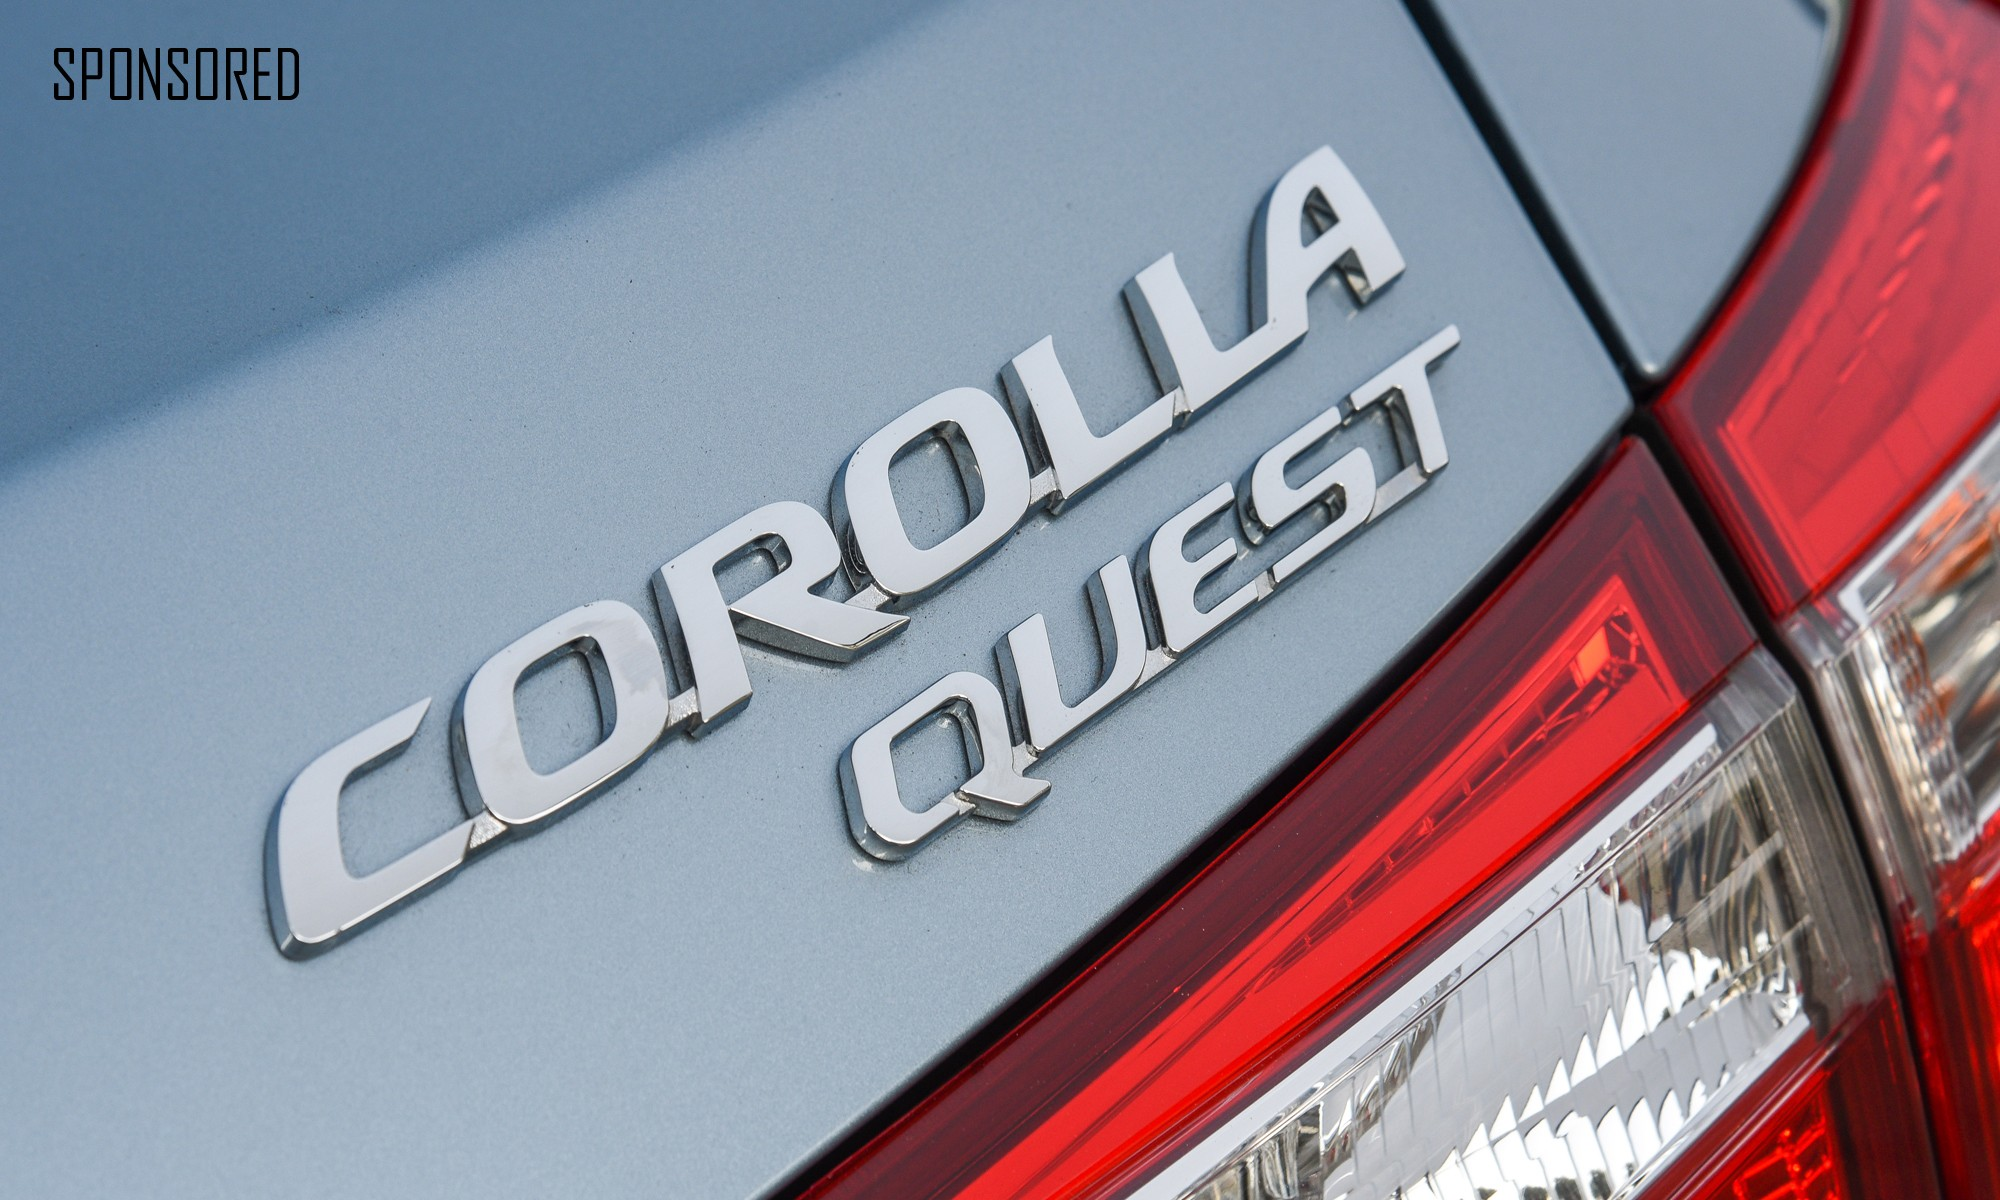 Toyota Corolla Quest badge sponsored